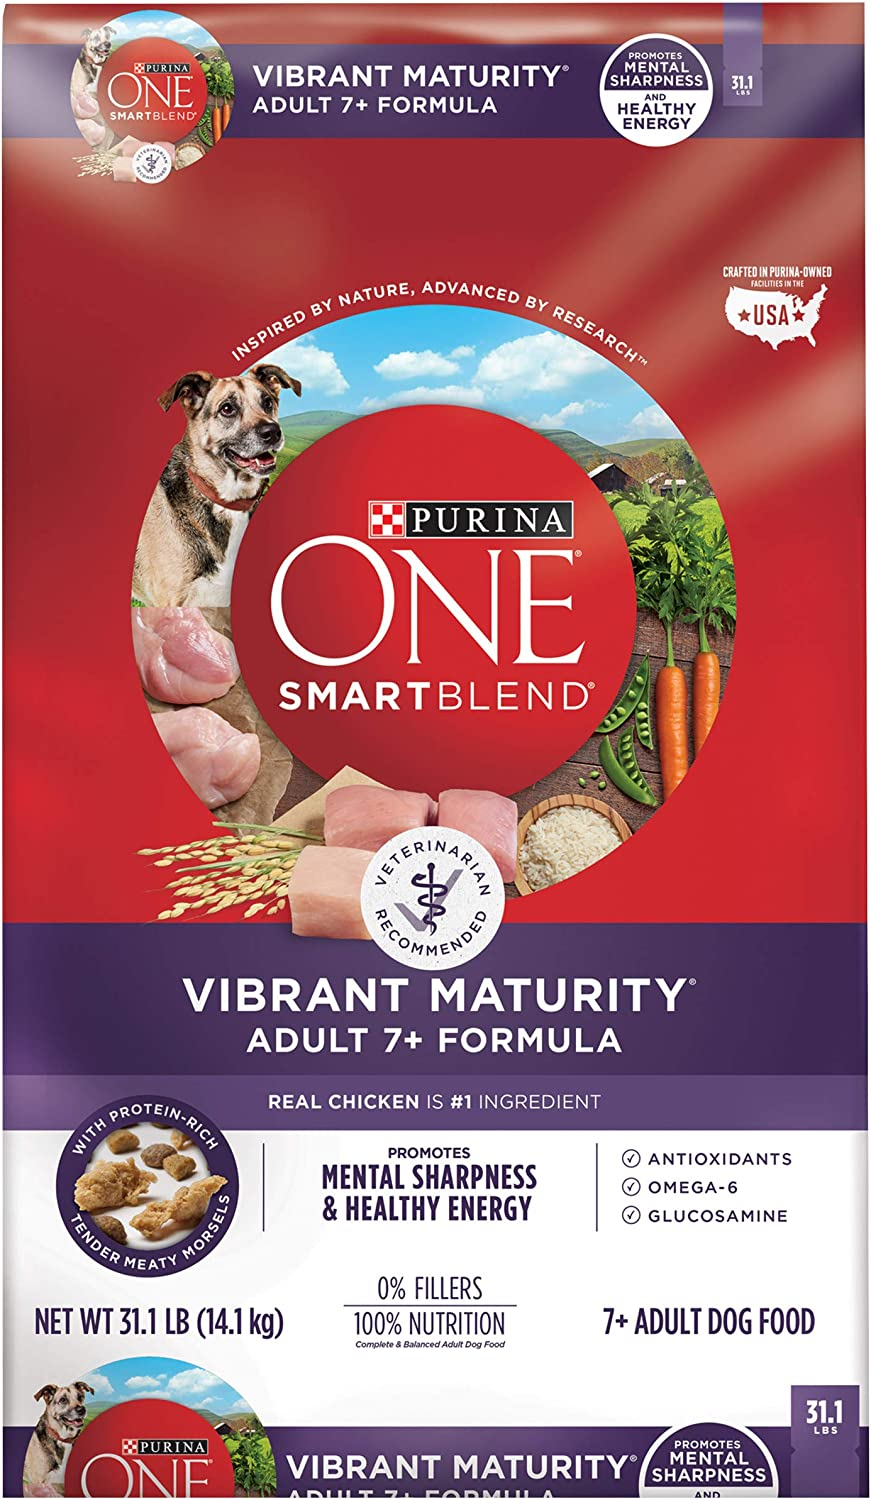 6. Purina ONE SmartBlend Vibrant Maturity 7+ Adult Formula